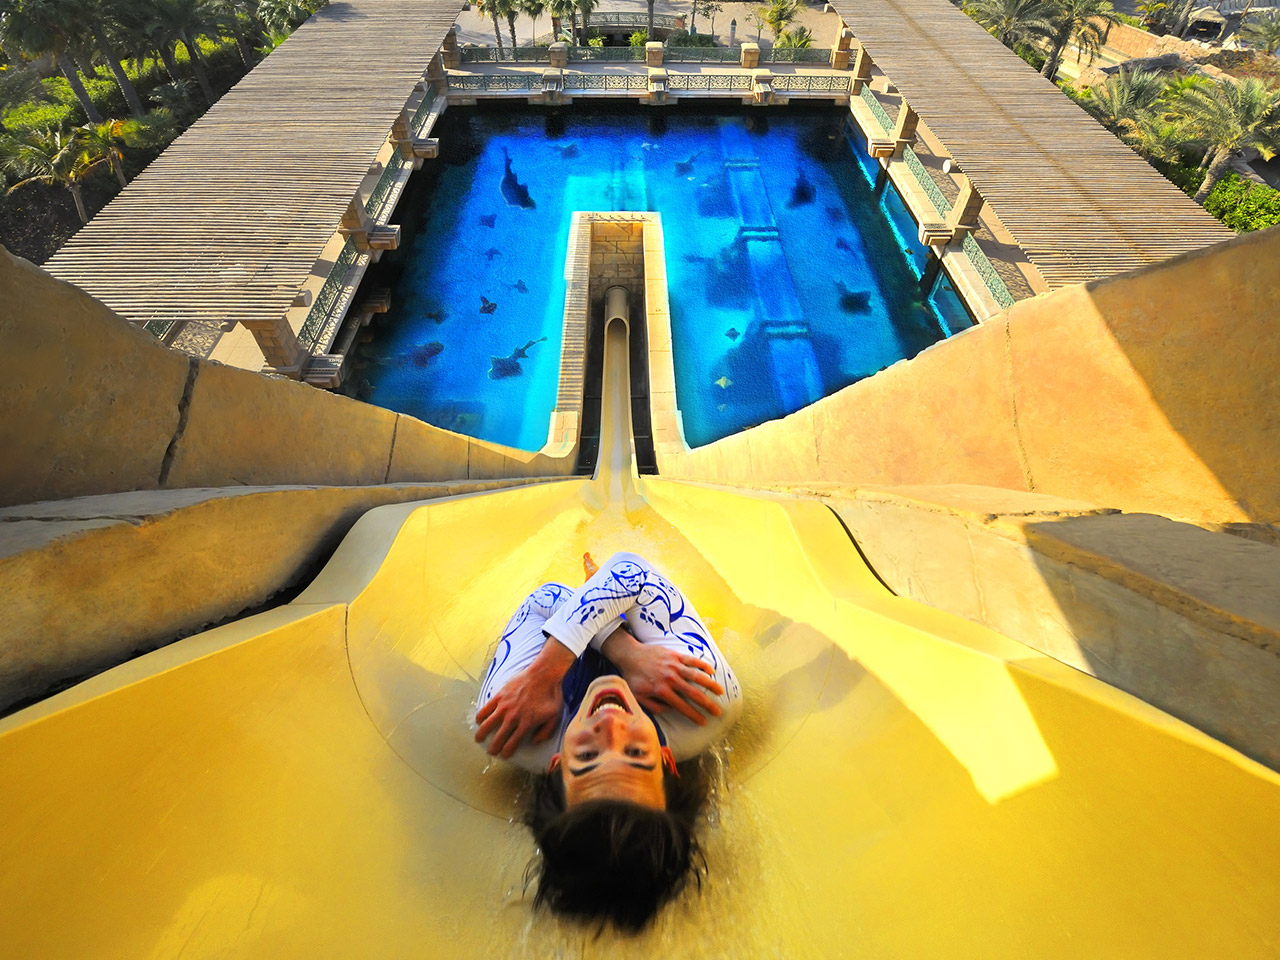 Listopedia: The World's Best Water Parks